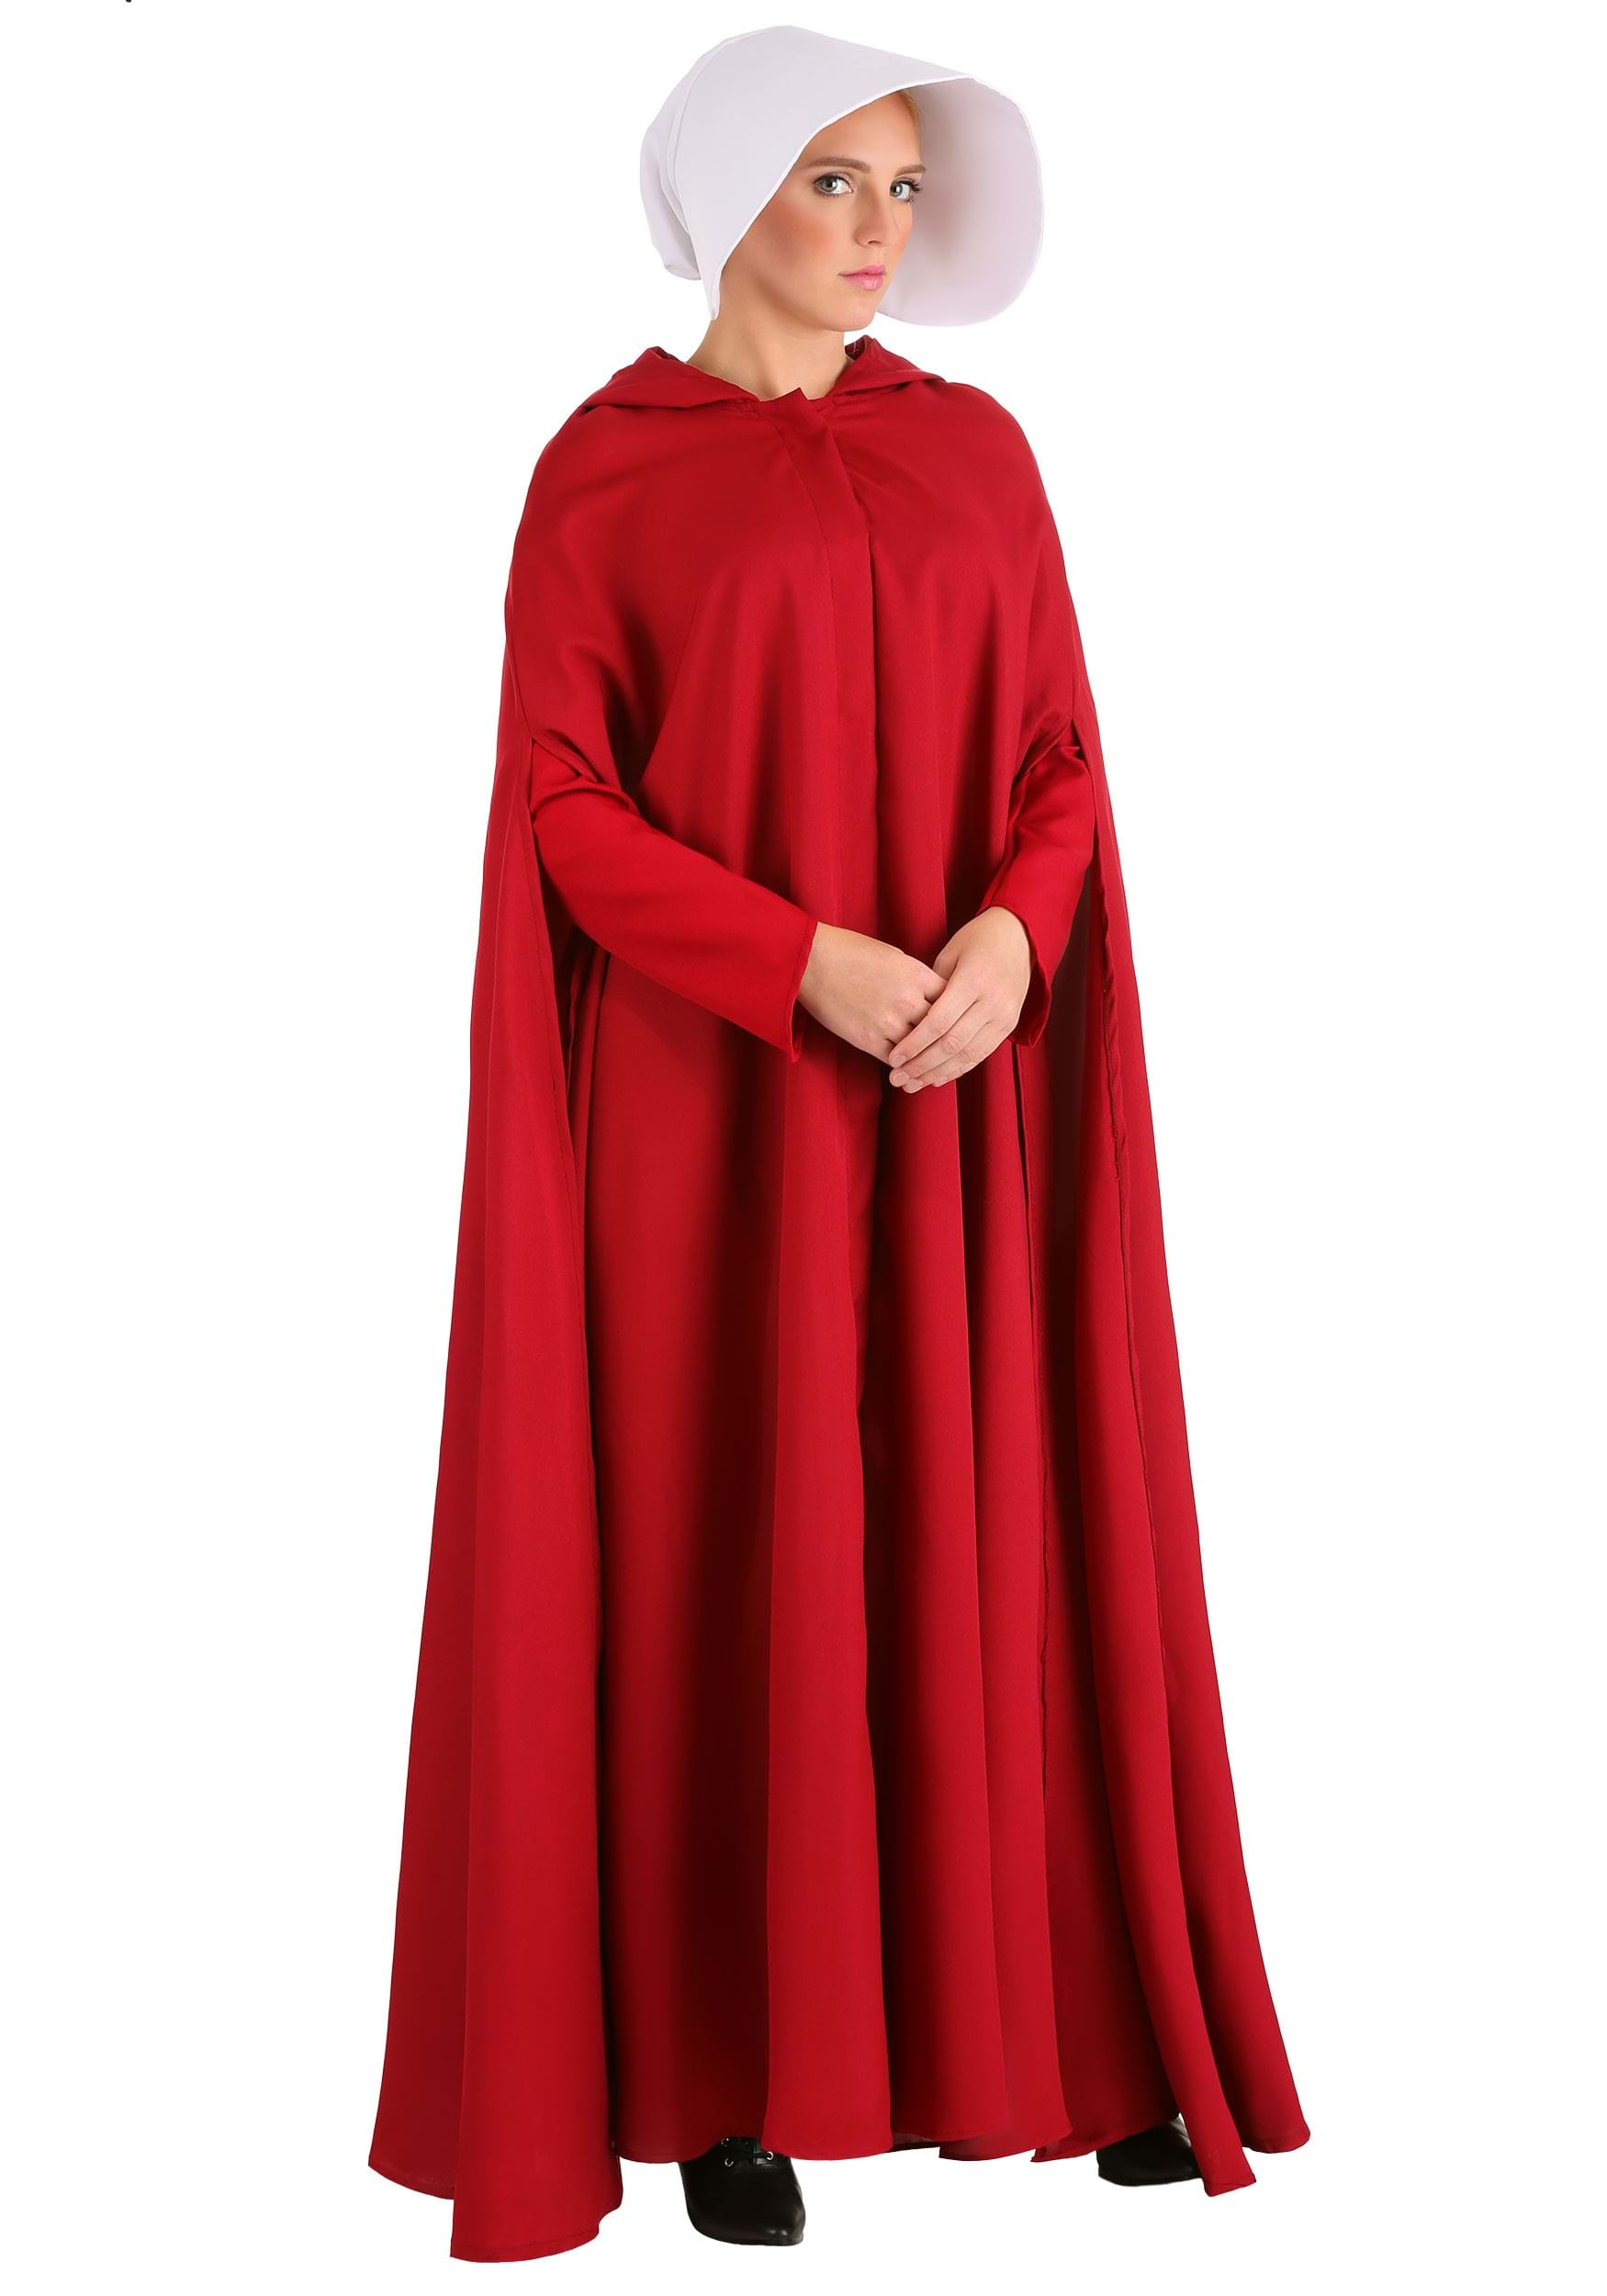 Handmaid's Tale Costume for Women | Movie Character Costume-book character costume ideas for adults